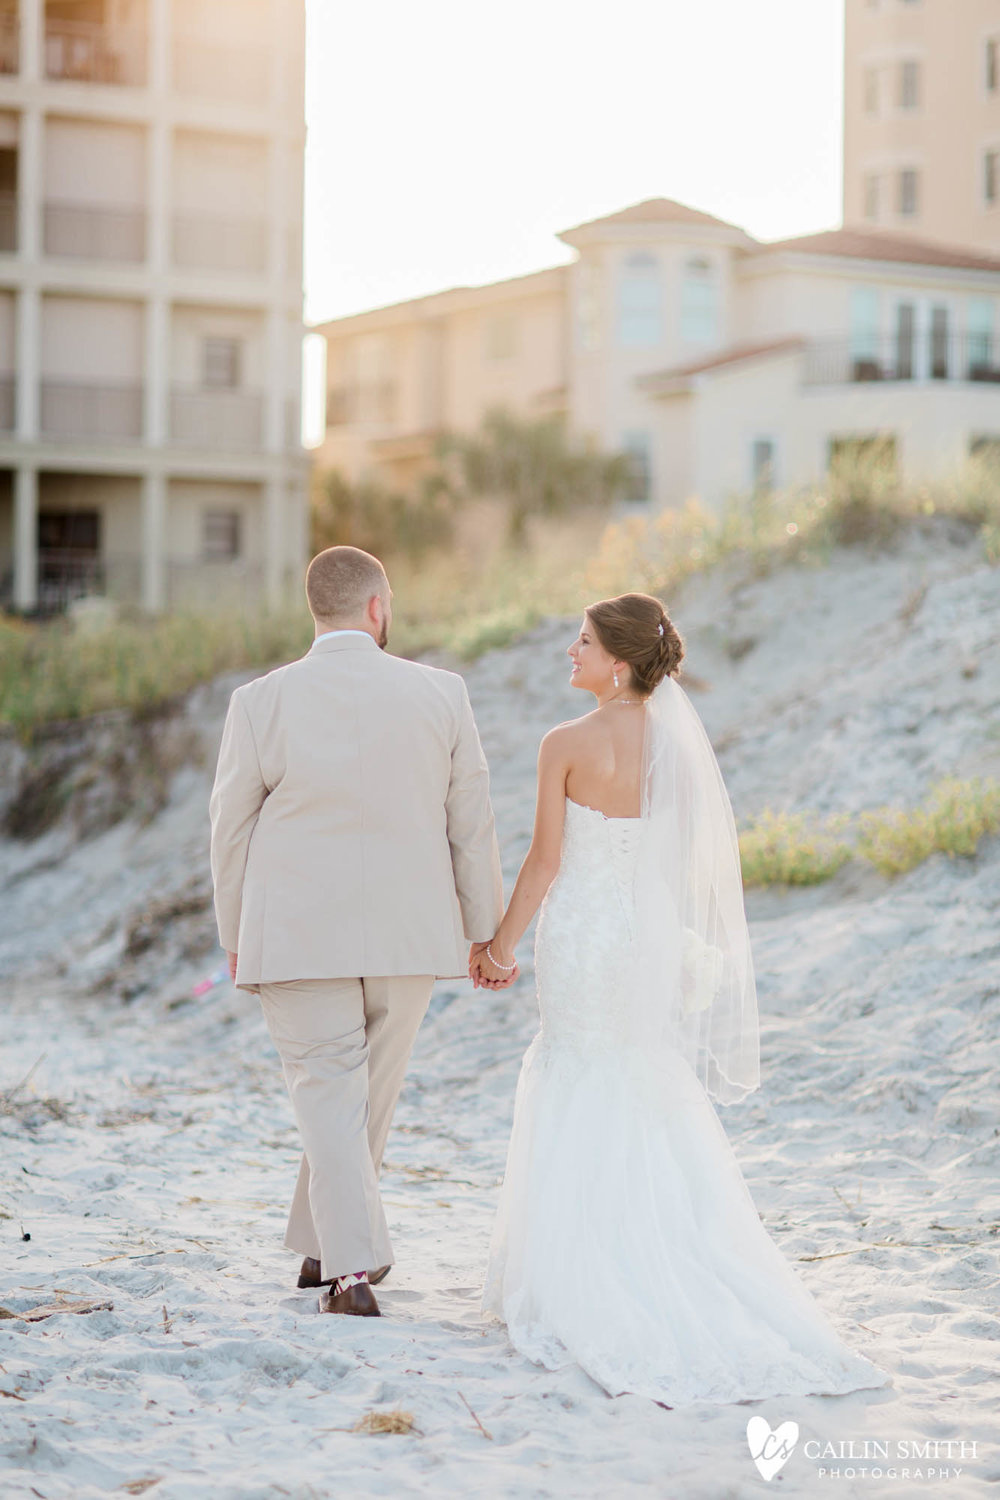 Elyssa_Caleb_Jacksonville_Beach_Wedding_0055.jpg